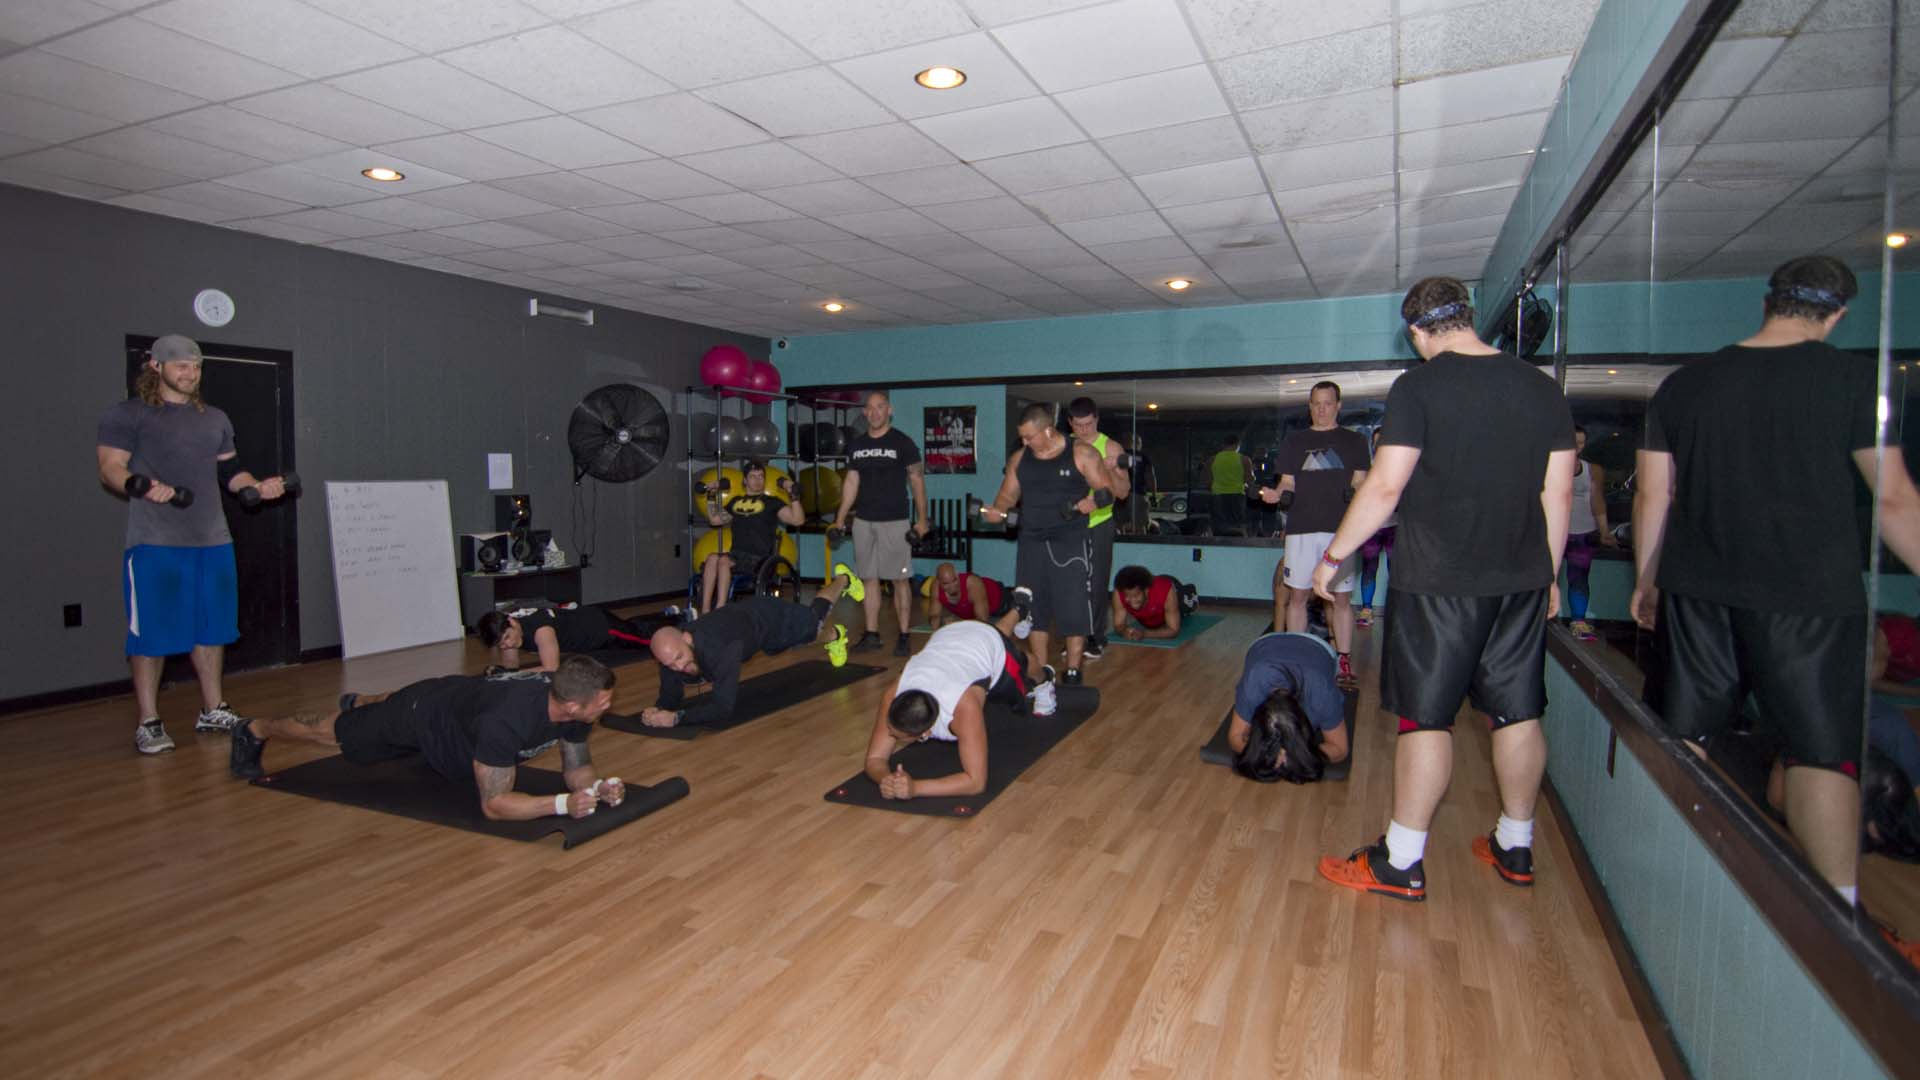 Cody instructs one group of students to lift a leg from the prone position, while other students perform a standing dumbbell bicep curl.